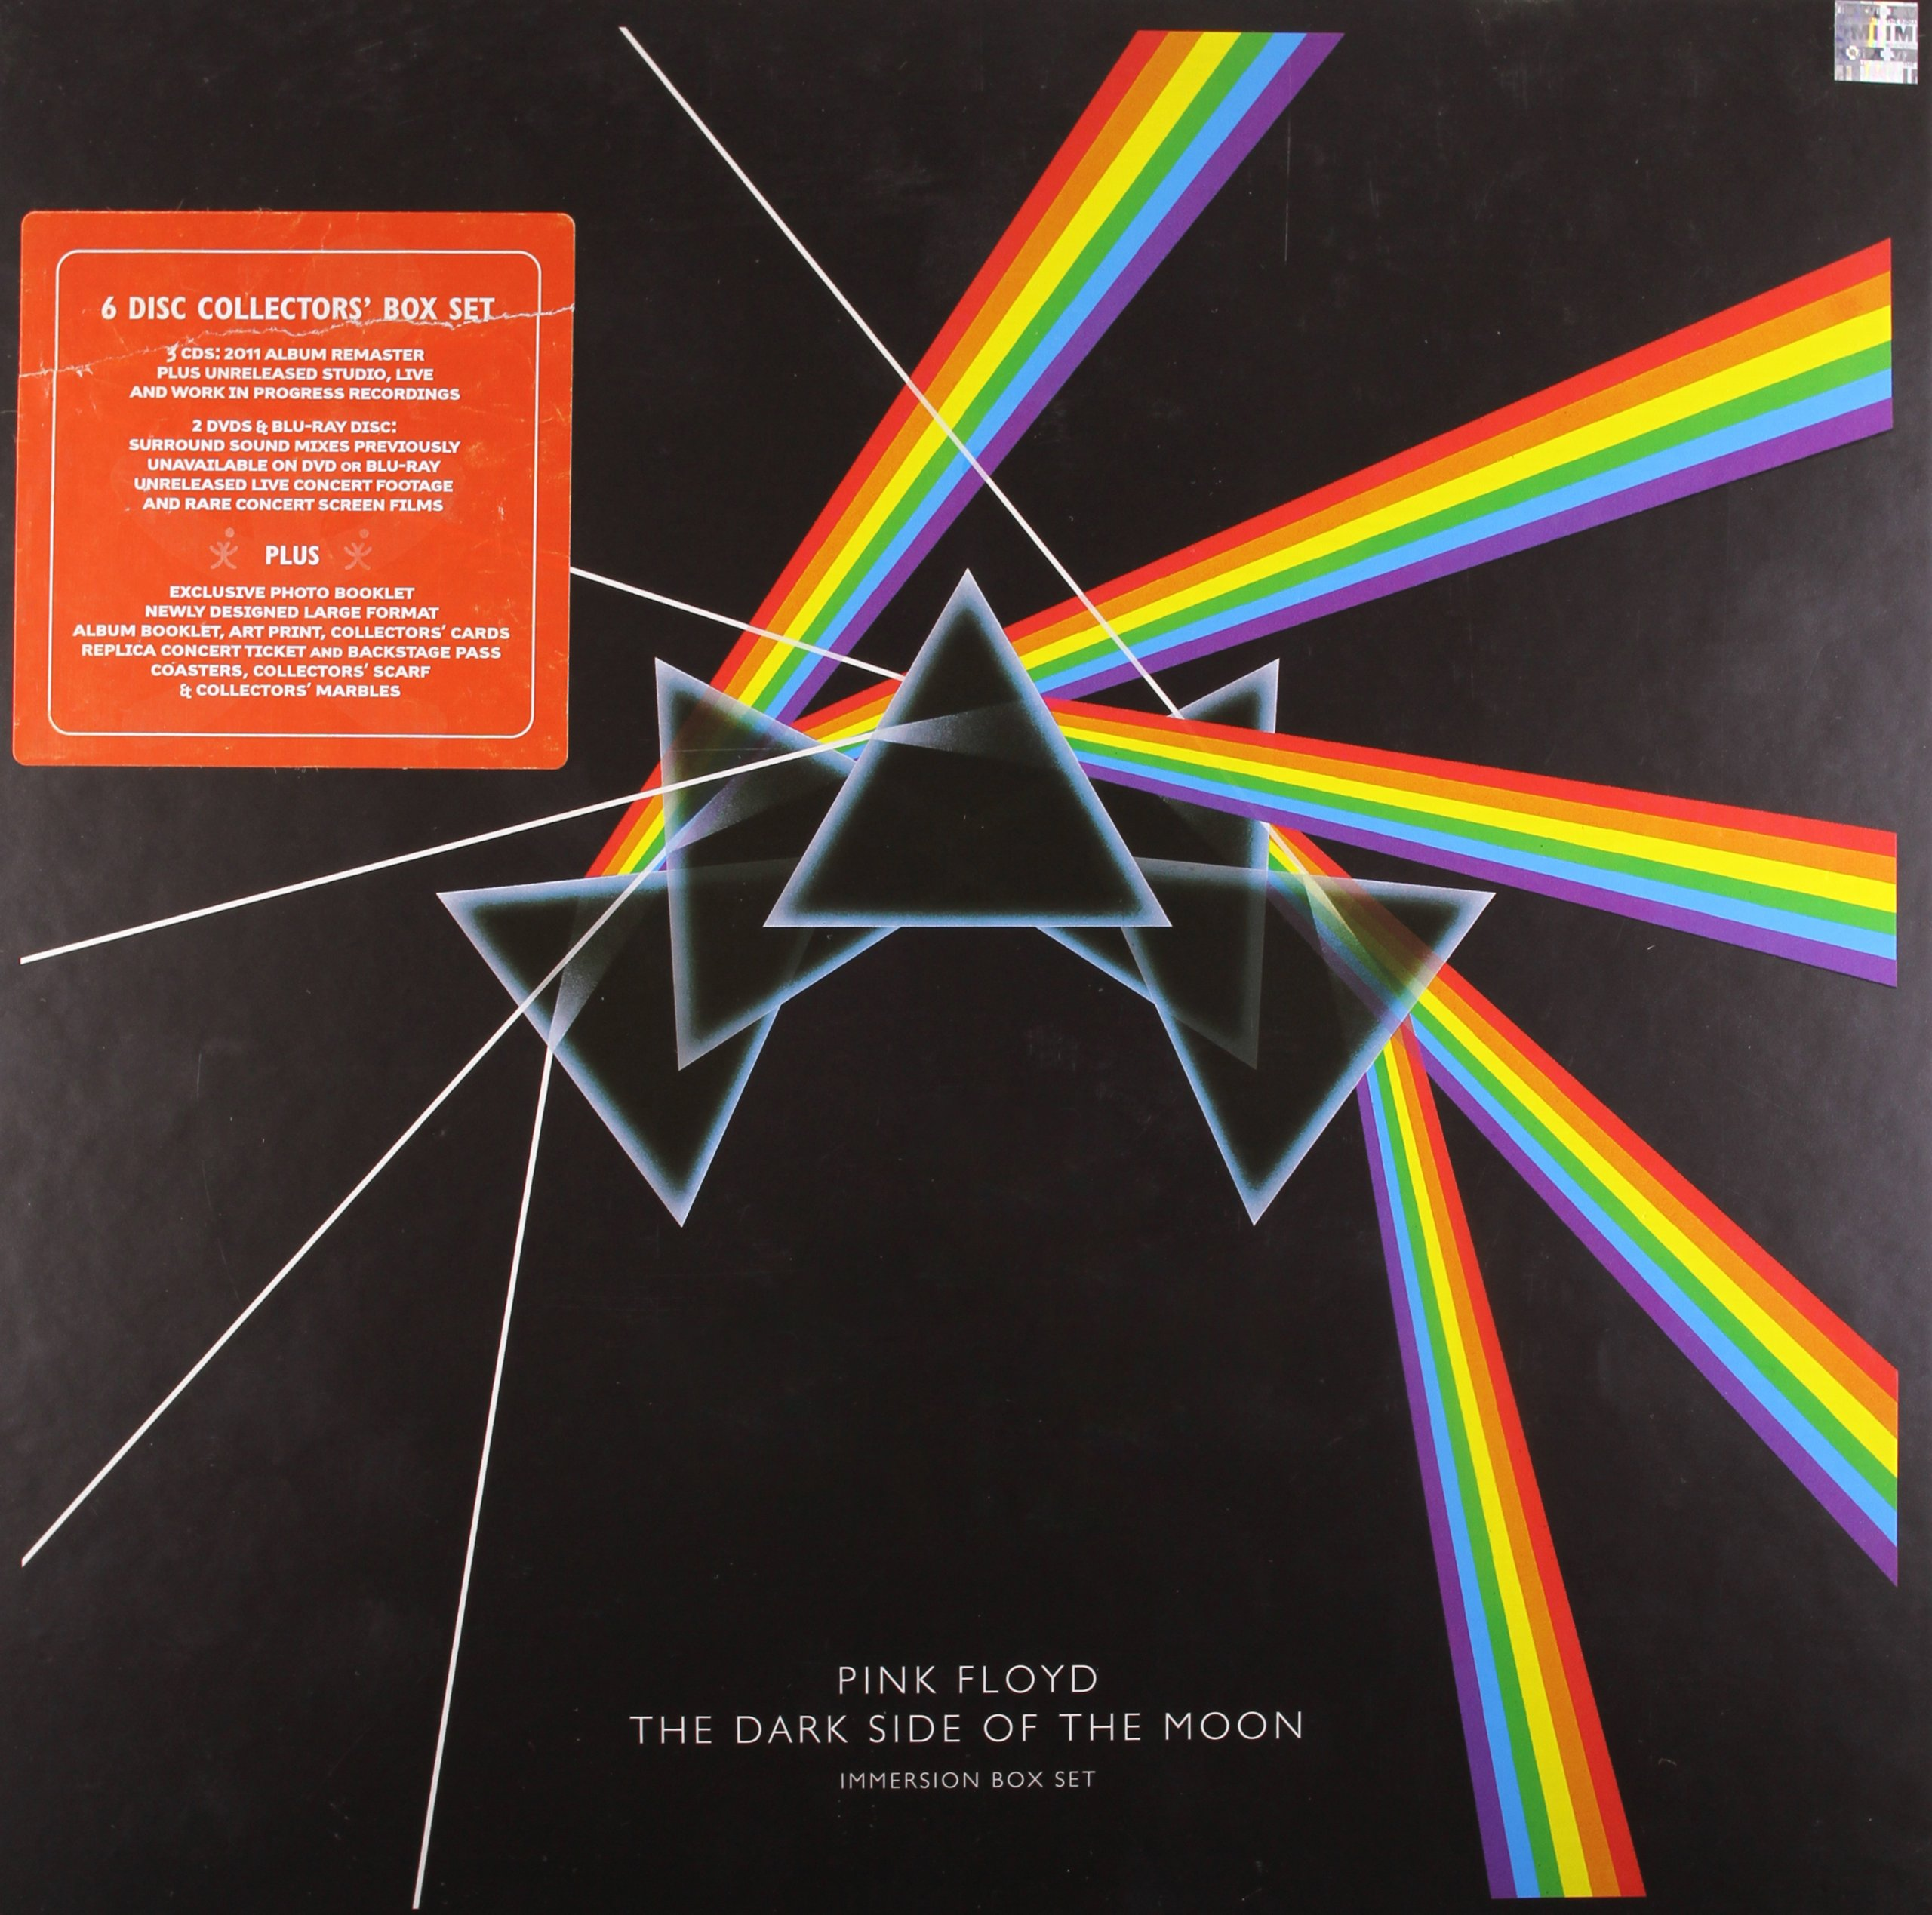 The Dark Side Of The Moon - Immersion Box Set by GIUCAR